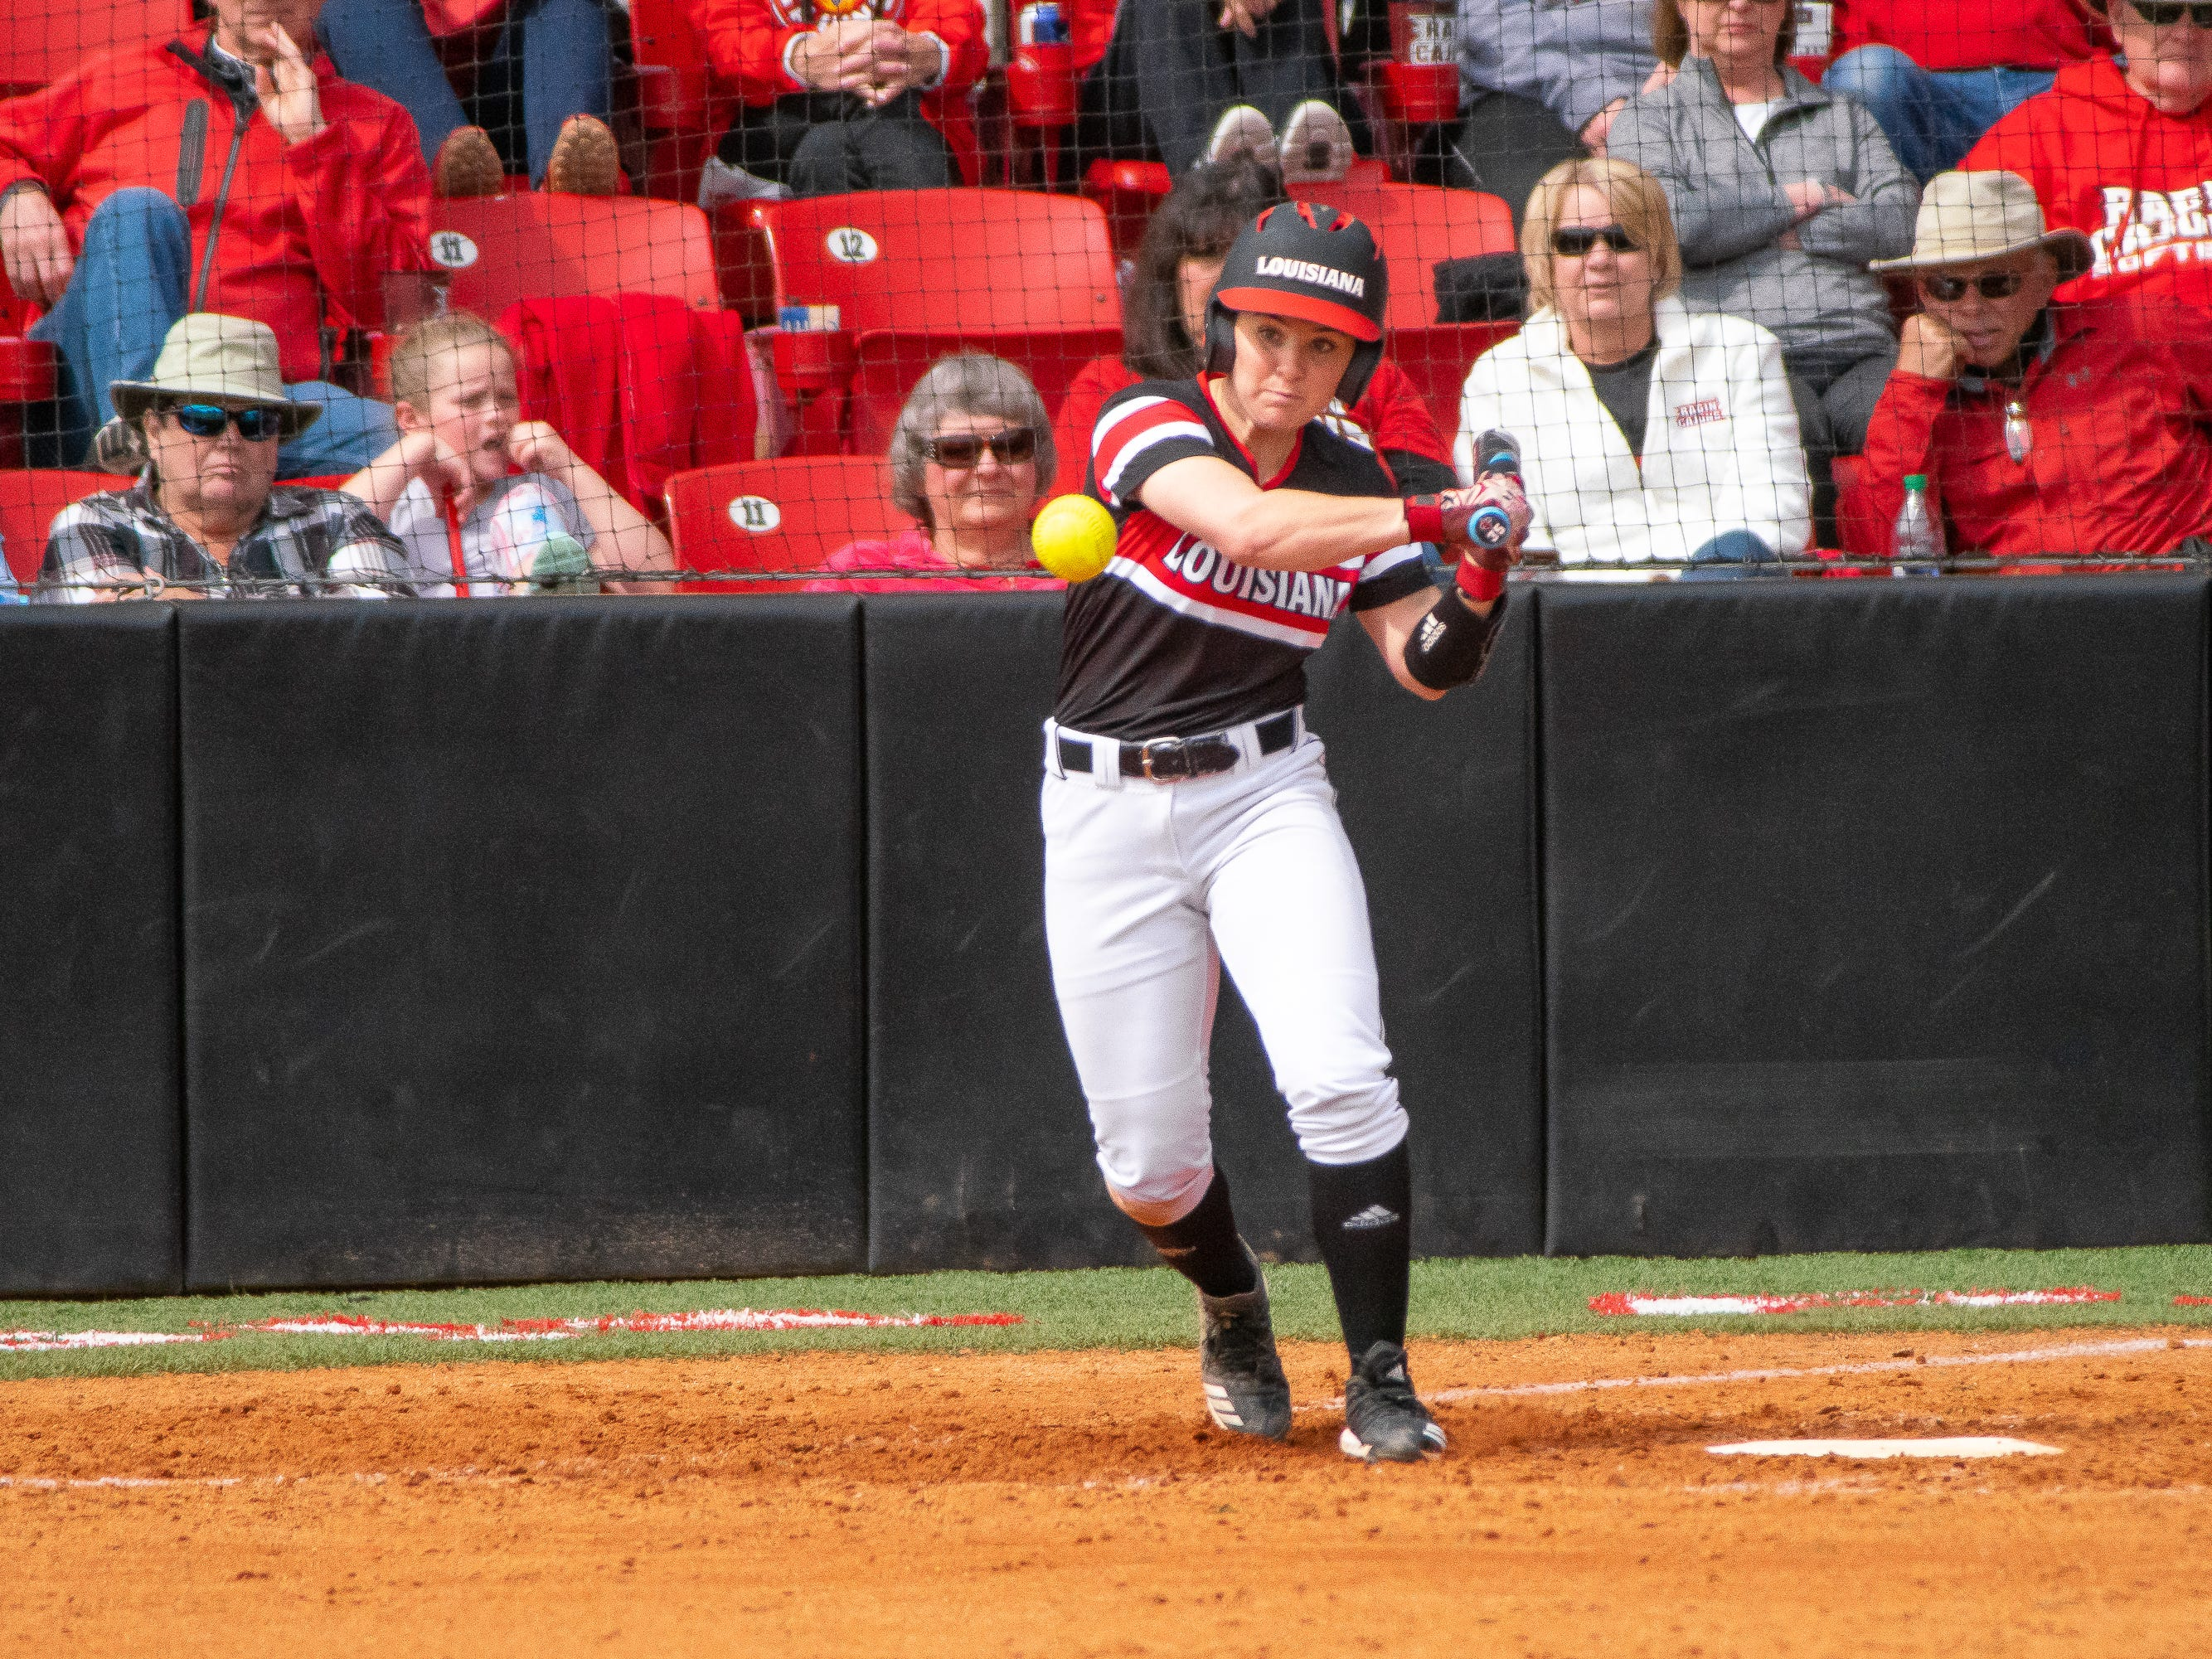 UL's Keeli Milligan swings at the pitch as the Ragin' Cajuns take on the Troy Trojans at Yvette Girouard Field at Lamson Park on Saturday, March 16, 2019.